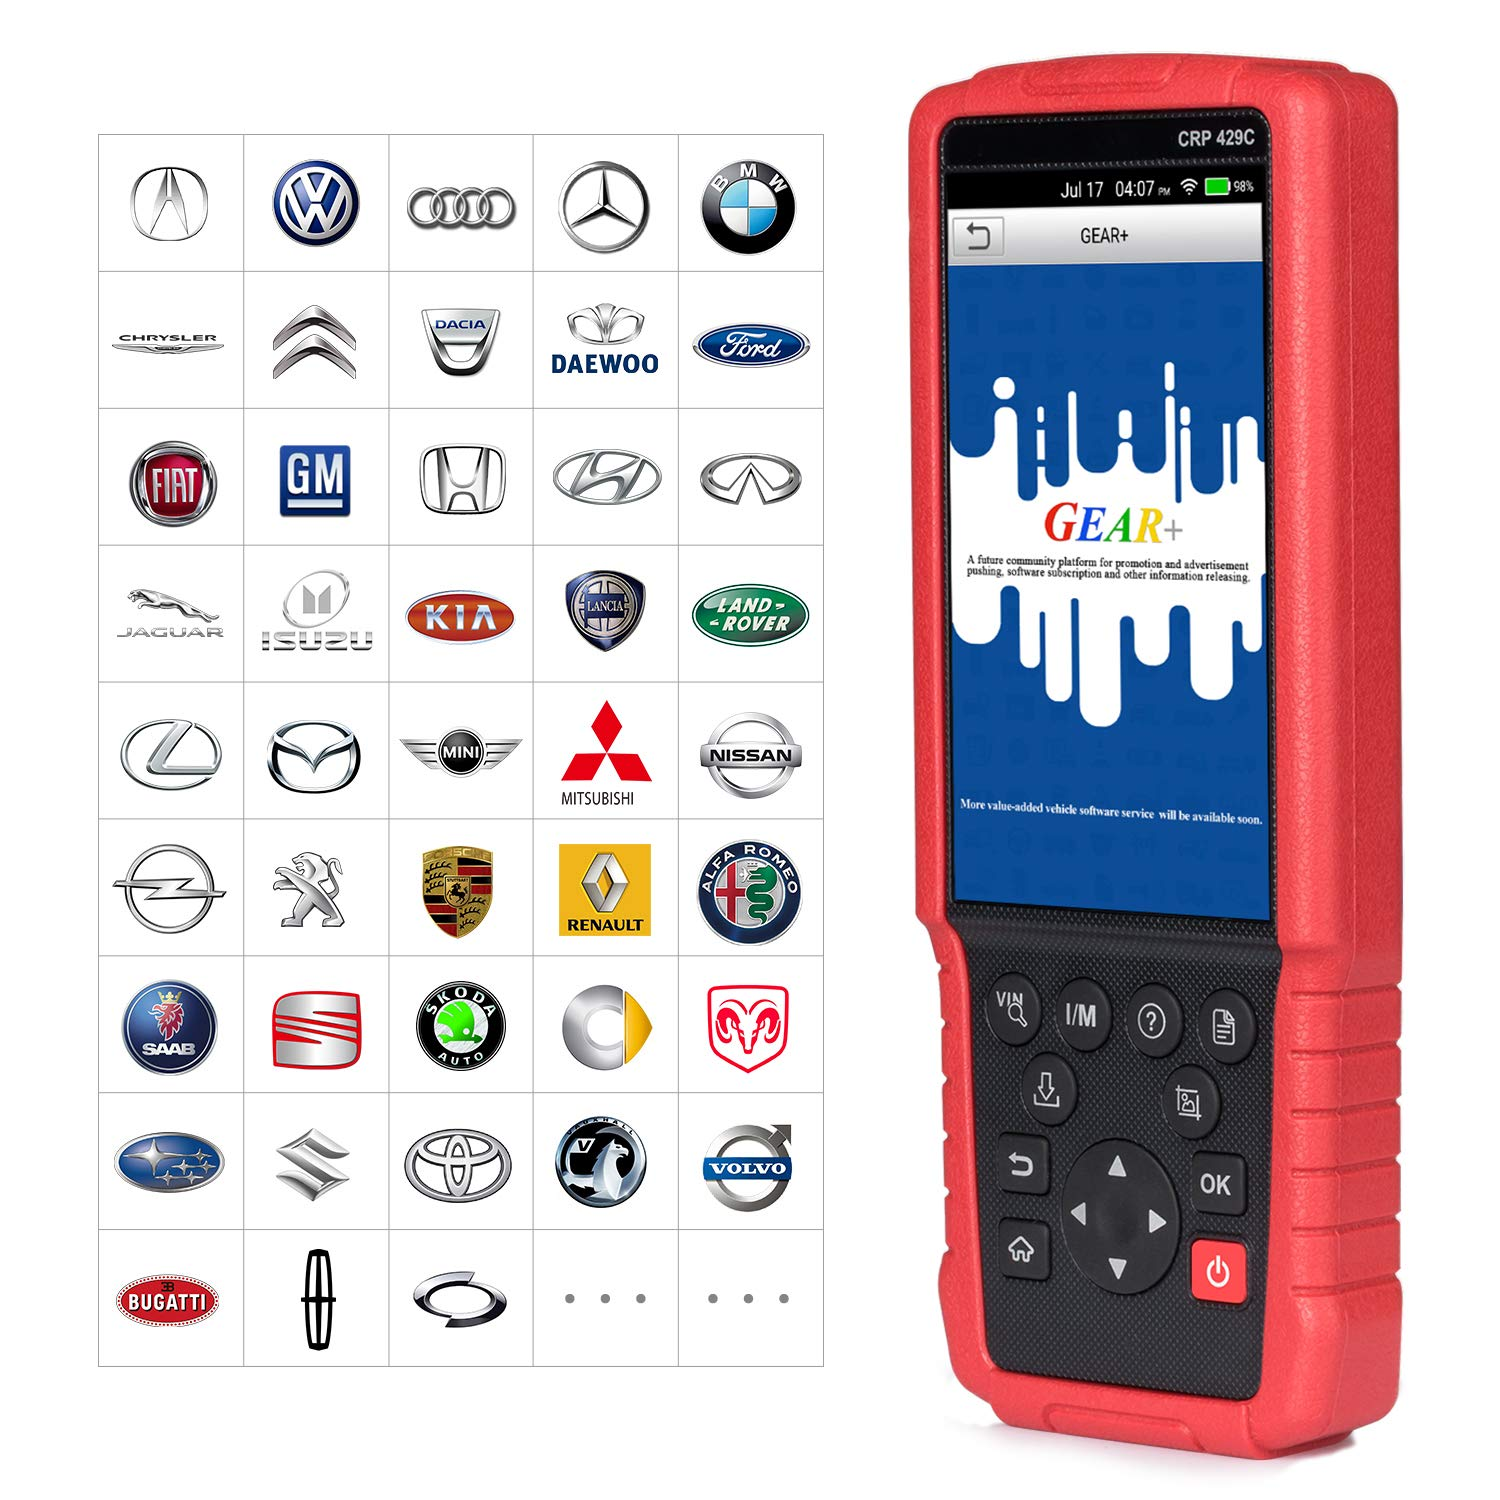 LAUNCH CRP429C OBD2 Diagnostic Scan Tool ENG/TCM/ABS/SRS with Oil Lamp Reset,ABS Bleeding,EPB,DPF Regeneration,IMMO,Injector Coding,BMS,TPMS Reset,SAS+EL50448 TPMS As Gift by LAUNCH (Image #6)